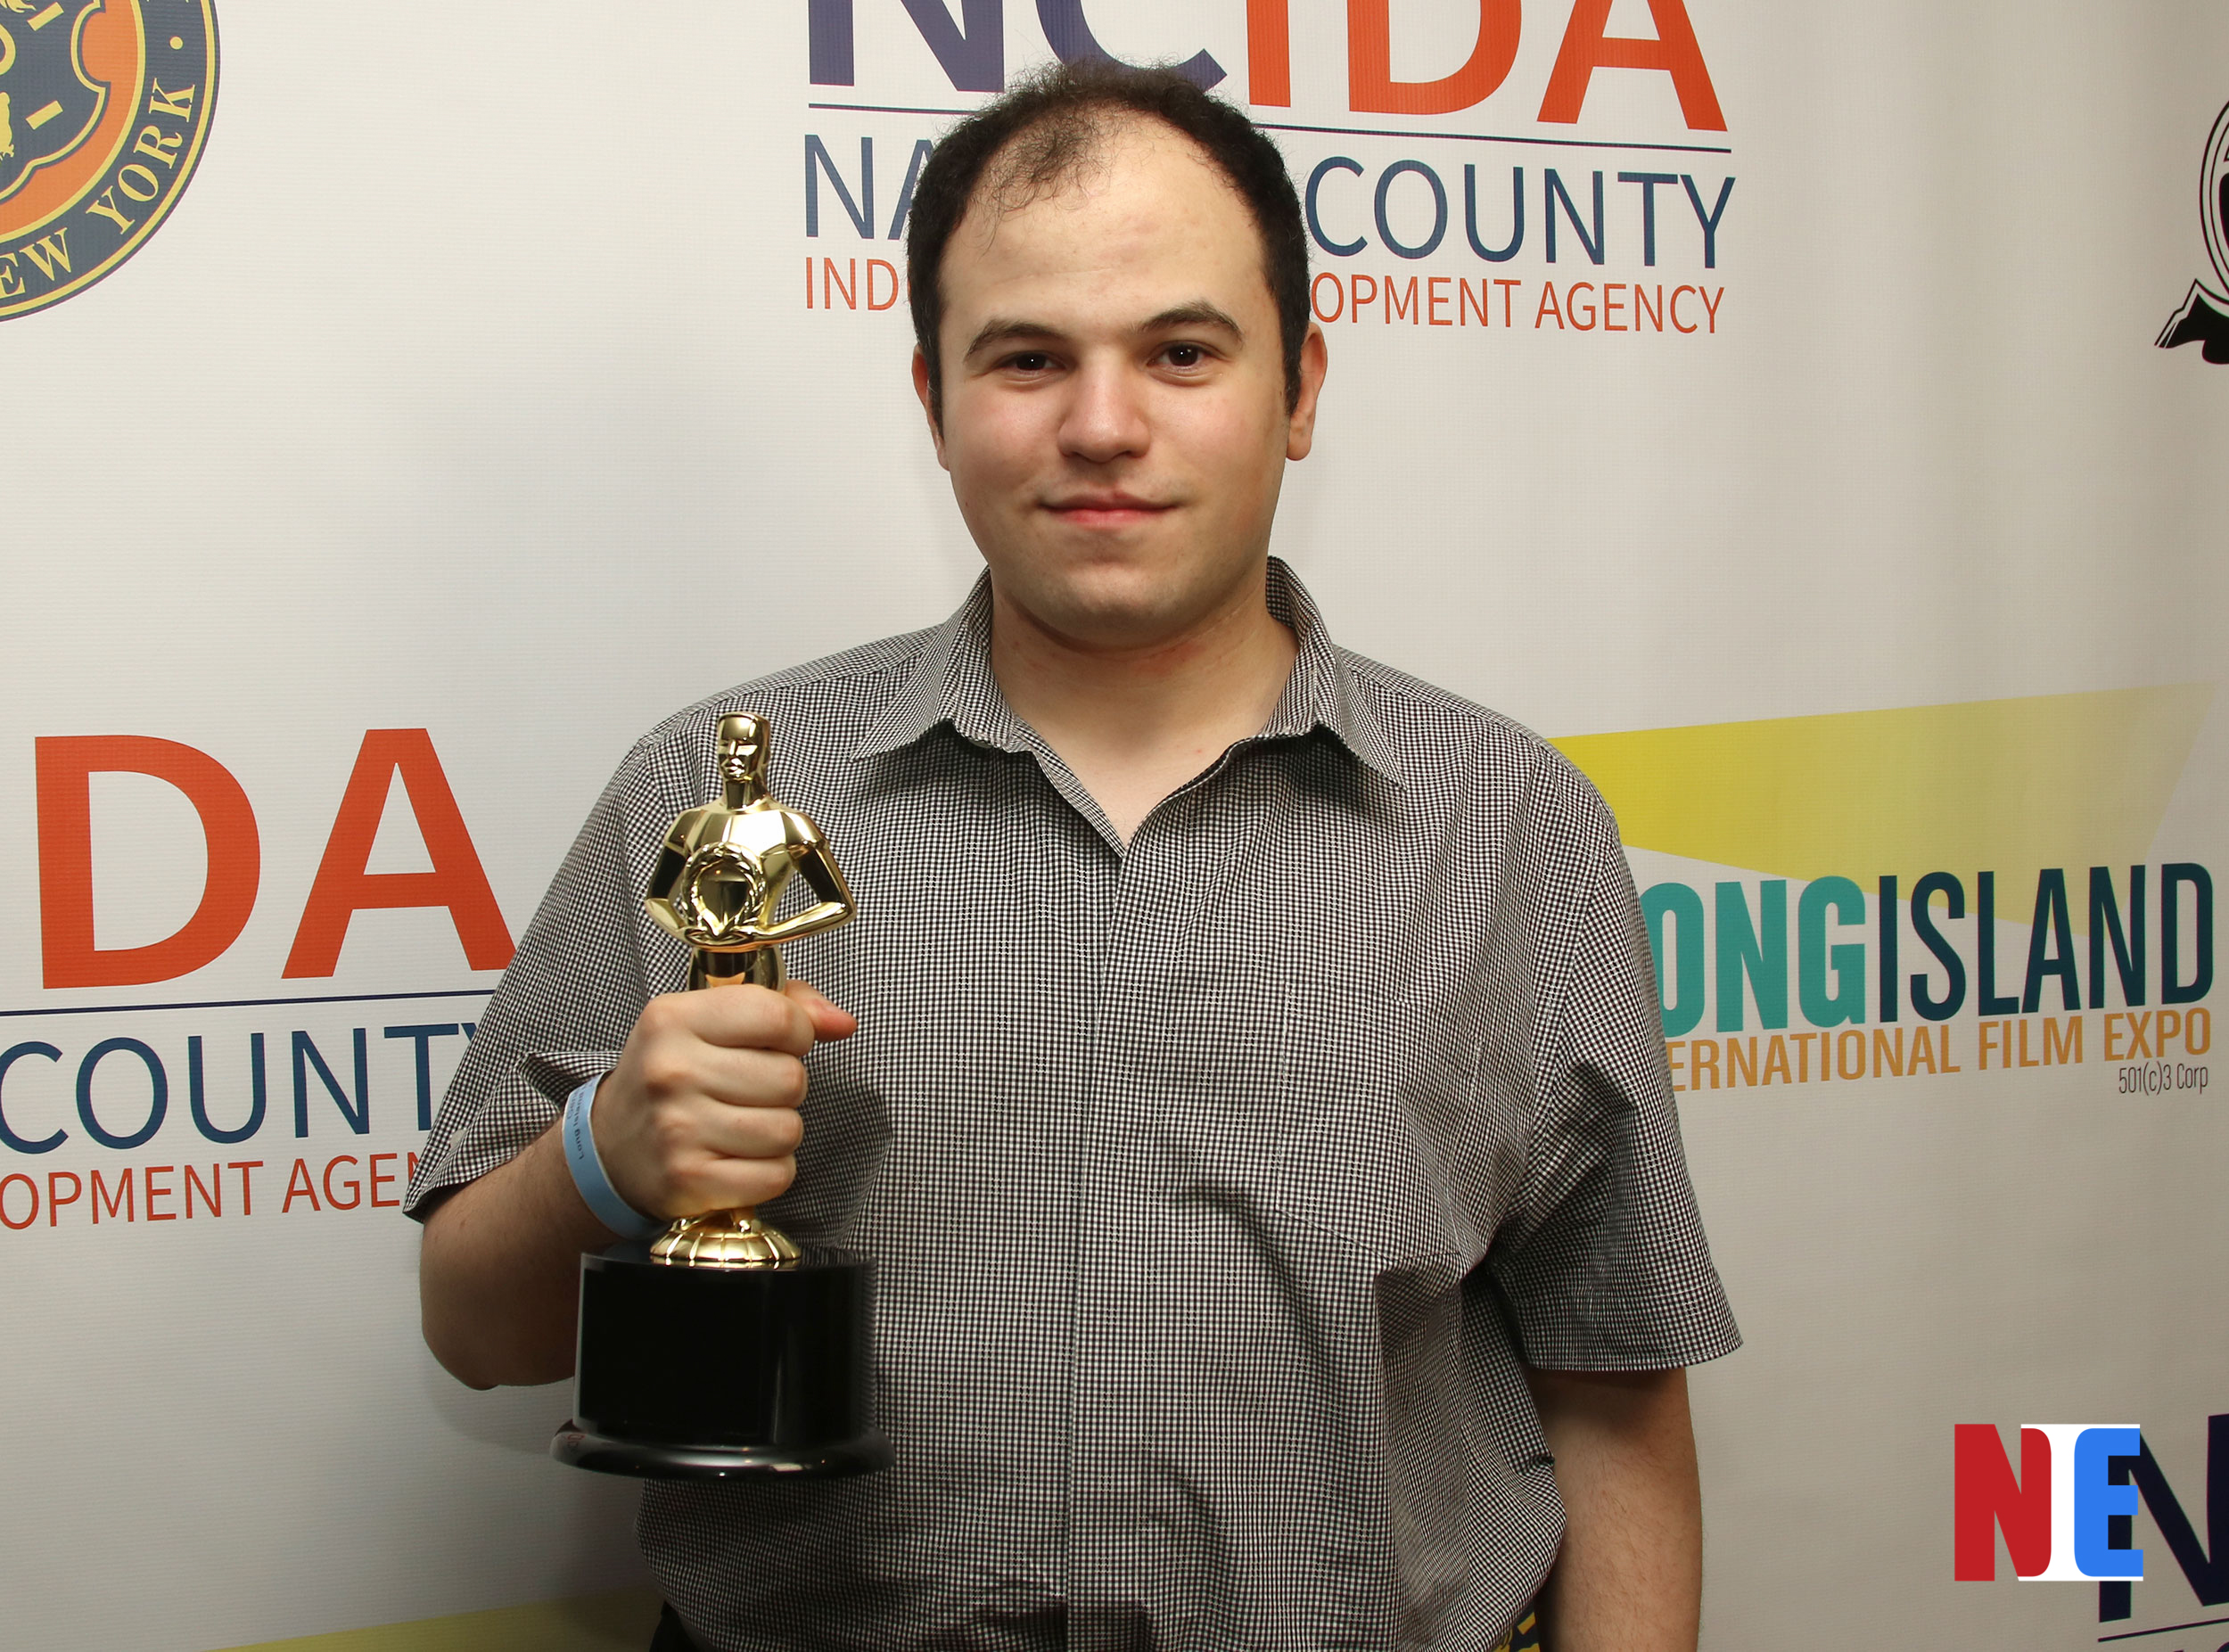 Max Hechtman wins Best Documentary at the red carpet award ceremony of Long Island International Film Expo inside the Bellmore Movies and Showplace on July 18, 2019 |  Courtesy of NIE